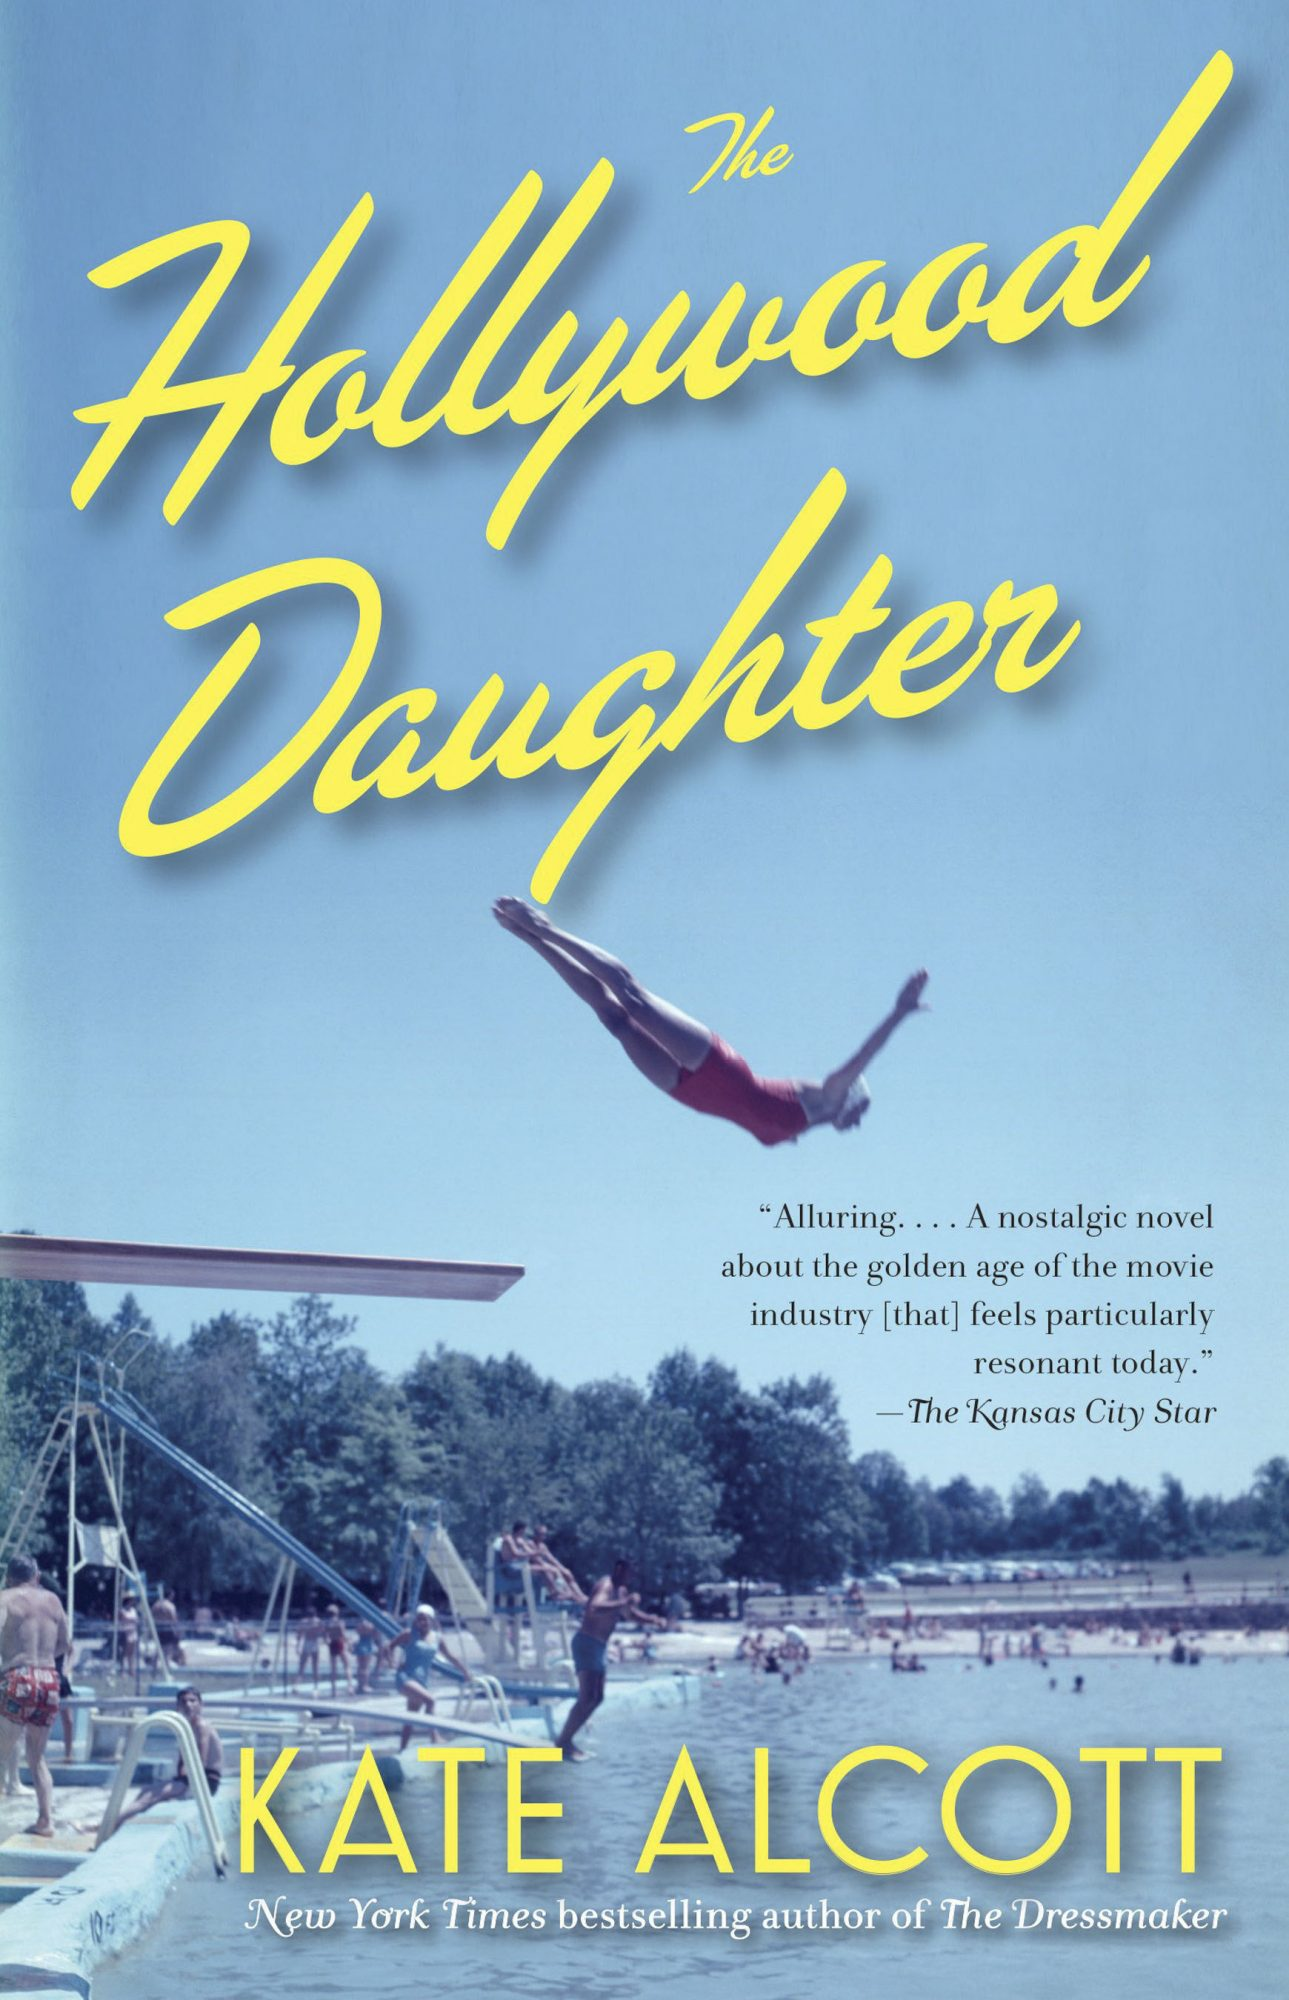 The Hollywood Daughter: A Novel by Kate Alcott  (Author)cr: Anchor